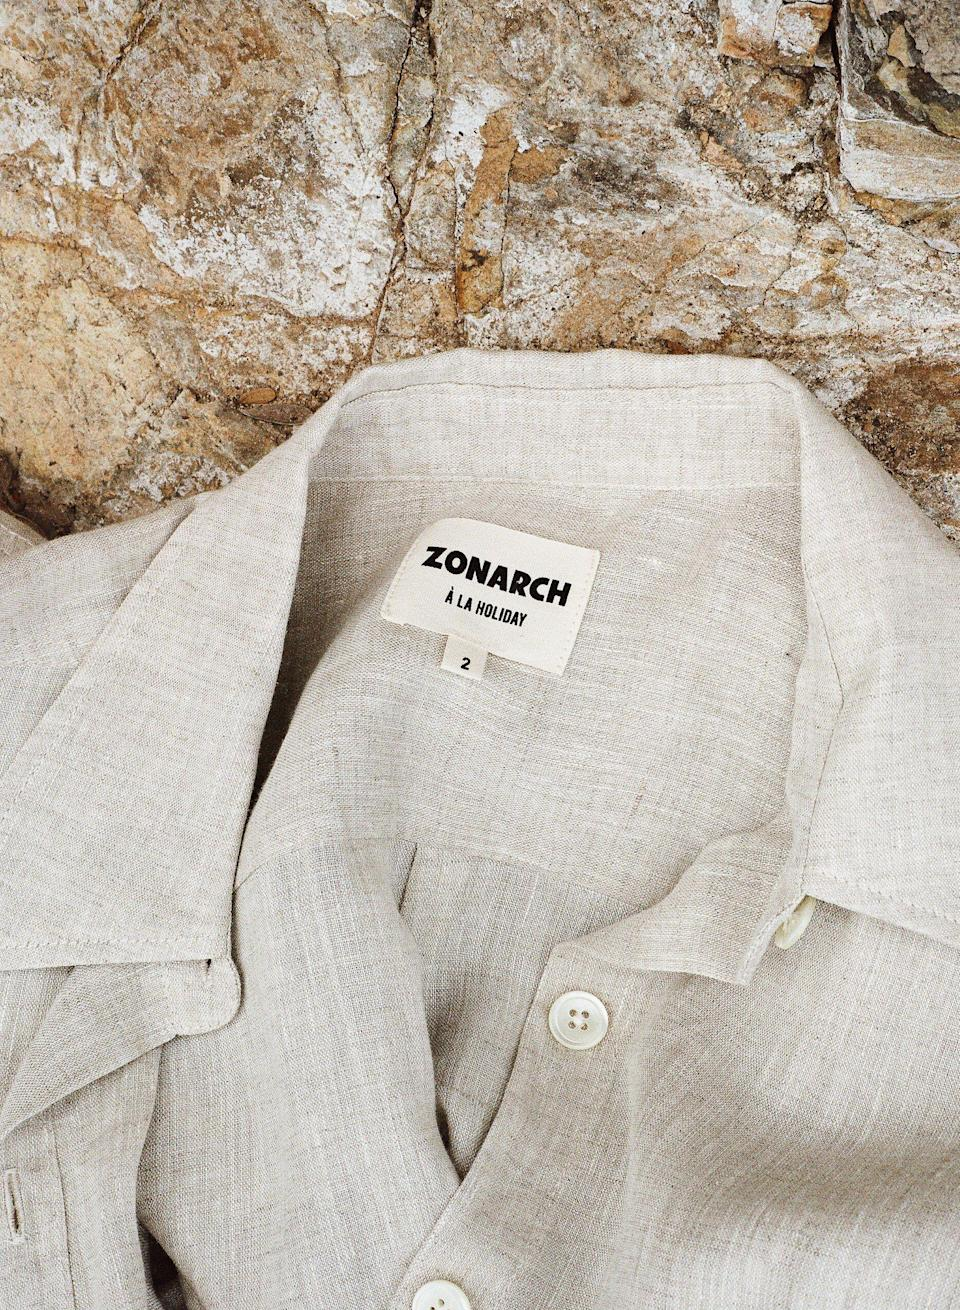 """<p>zonarch.com</p><p><strong>$130.00</strong></p><p><a href=""""https://zonarch.com/products/linen-shirt?variant=39511286579259"""" rel=""""nofollow noopener"""" target=""""_blank"""" data-ylk=""""slk:Shop Now"""" class=""""link rapid-noclick-resp"""">Shop Now</a></p><p>""""Zonarch's linen shirt is the essential piece for the end of summer. The design is oversized and vintage inspired, with a little embroidered sun detail on the back to make it feel personal. On top of that, Zonarch produces their apparel in California with recycled, sustainable materials and donates 3% of all revenue to organizations that work to fight for human rights, education, and climate protection. This grab and go shirt will look easy breezy over a bathing suit, or unbuttoned with a tank top and pair of wide leg jeans.""""—<em>Sarah Adams, Freelance Fashion Assistant</em></p>"""